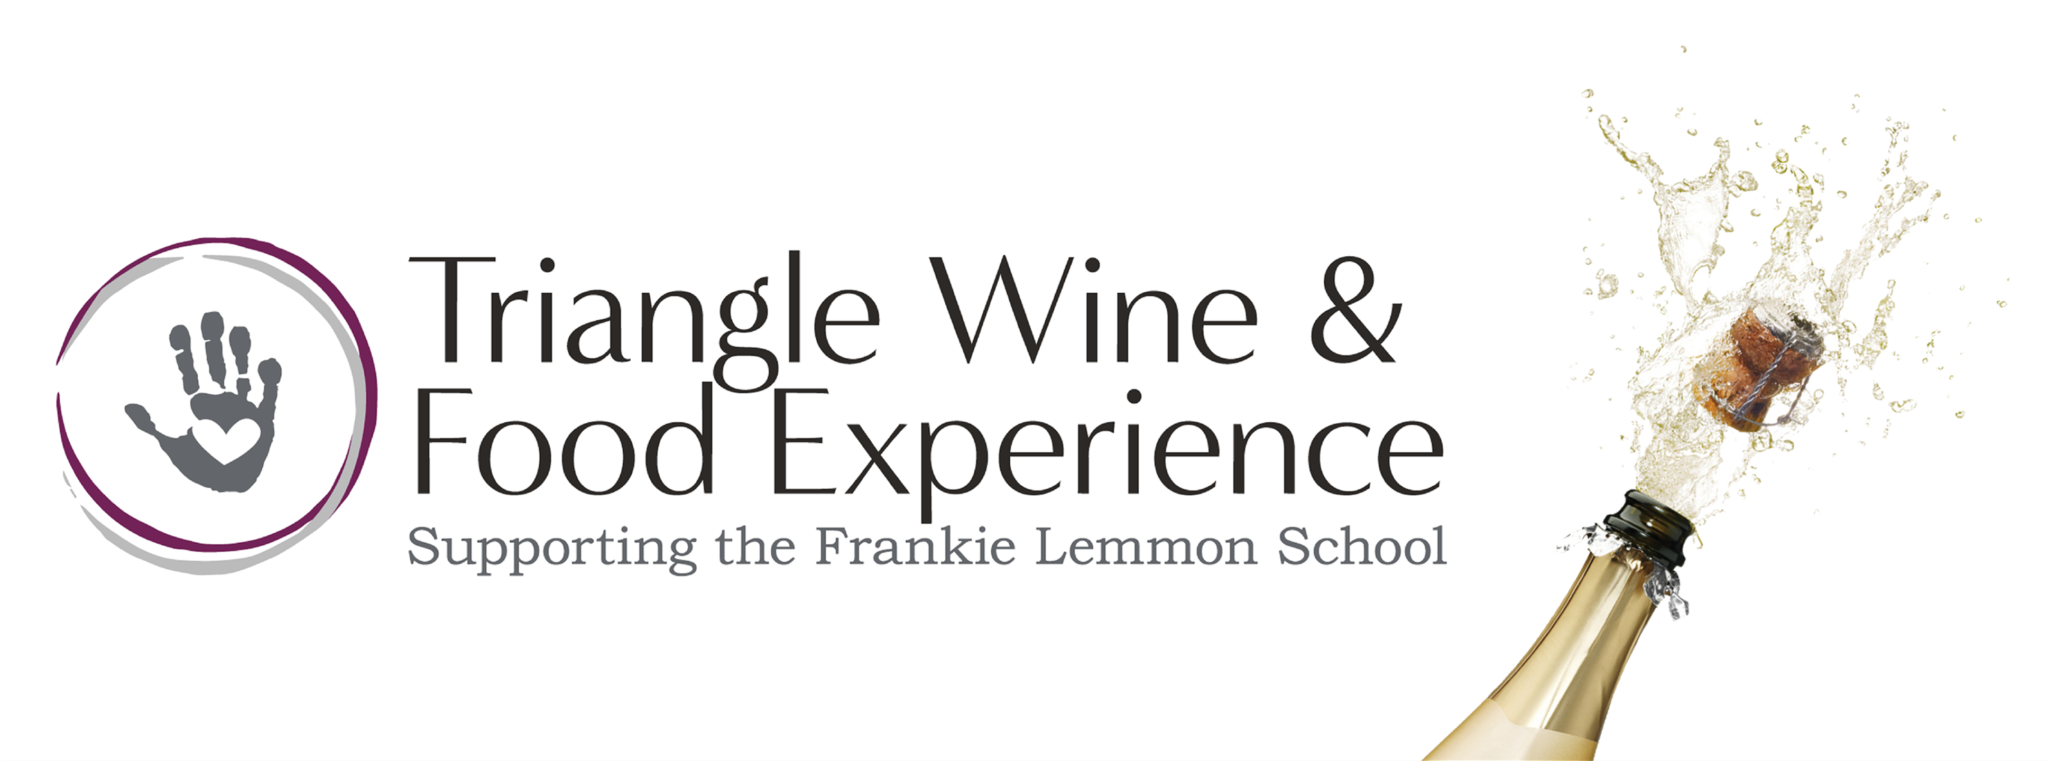 Triangle Wine & Food Experience